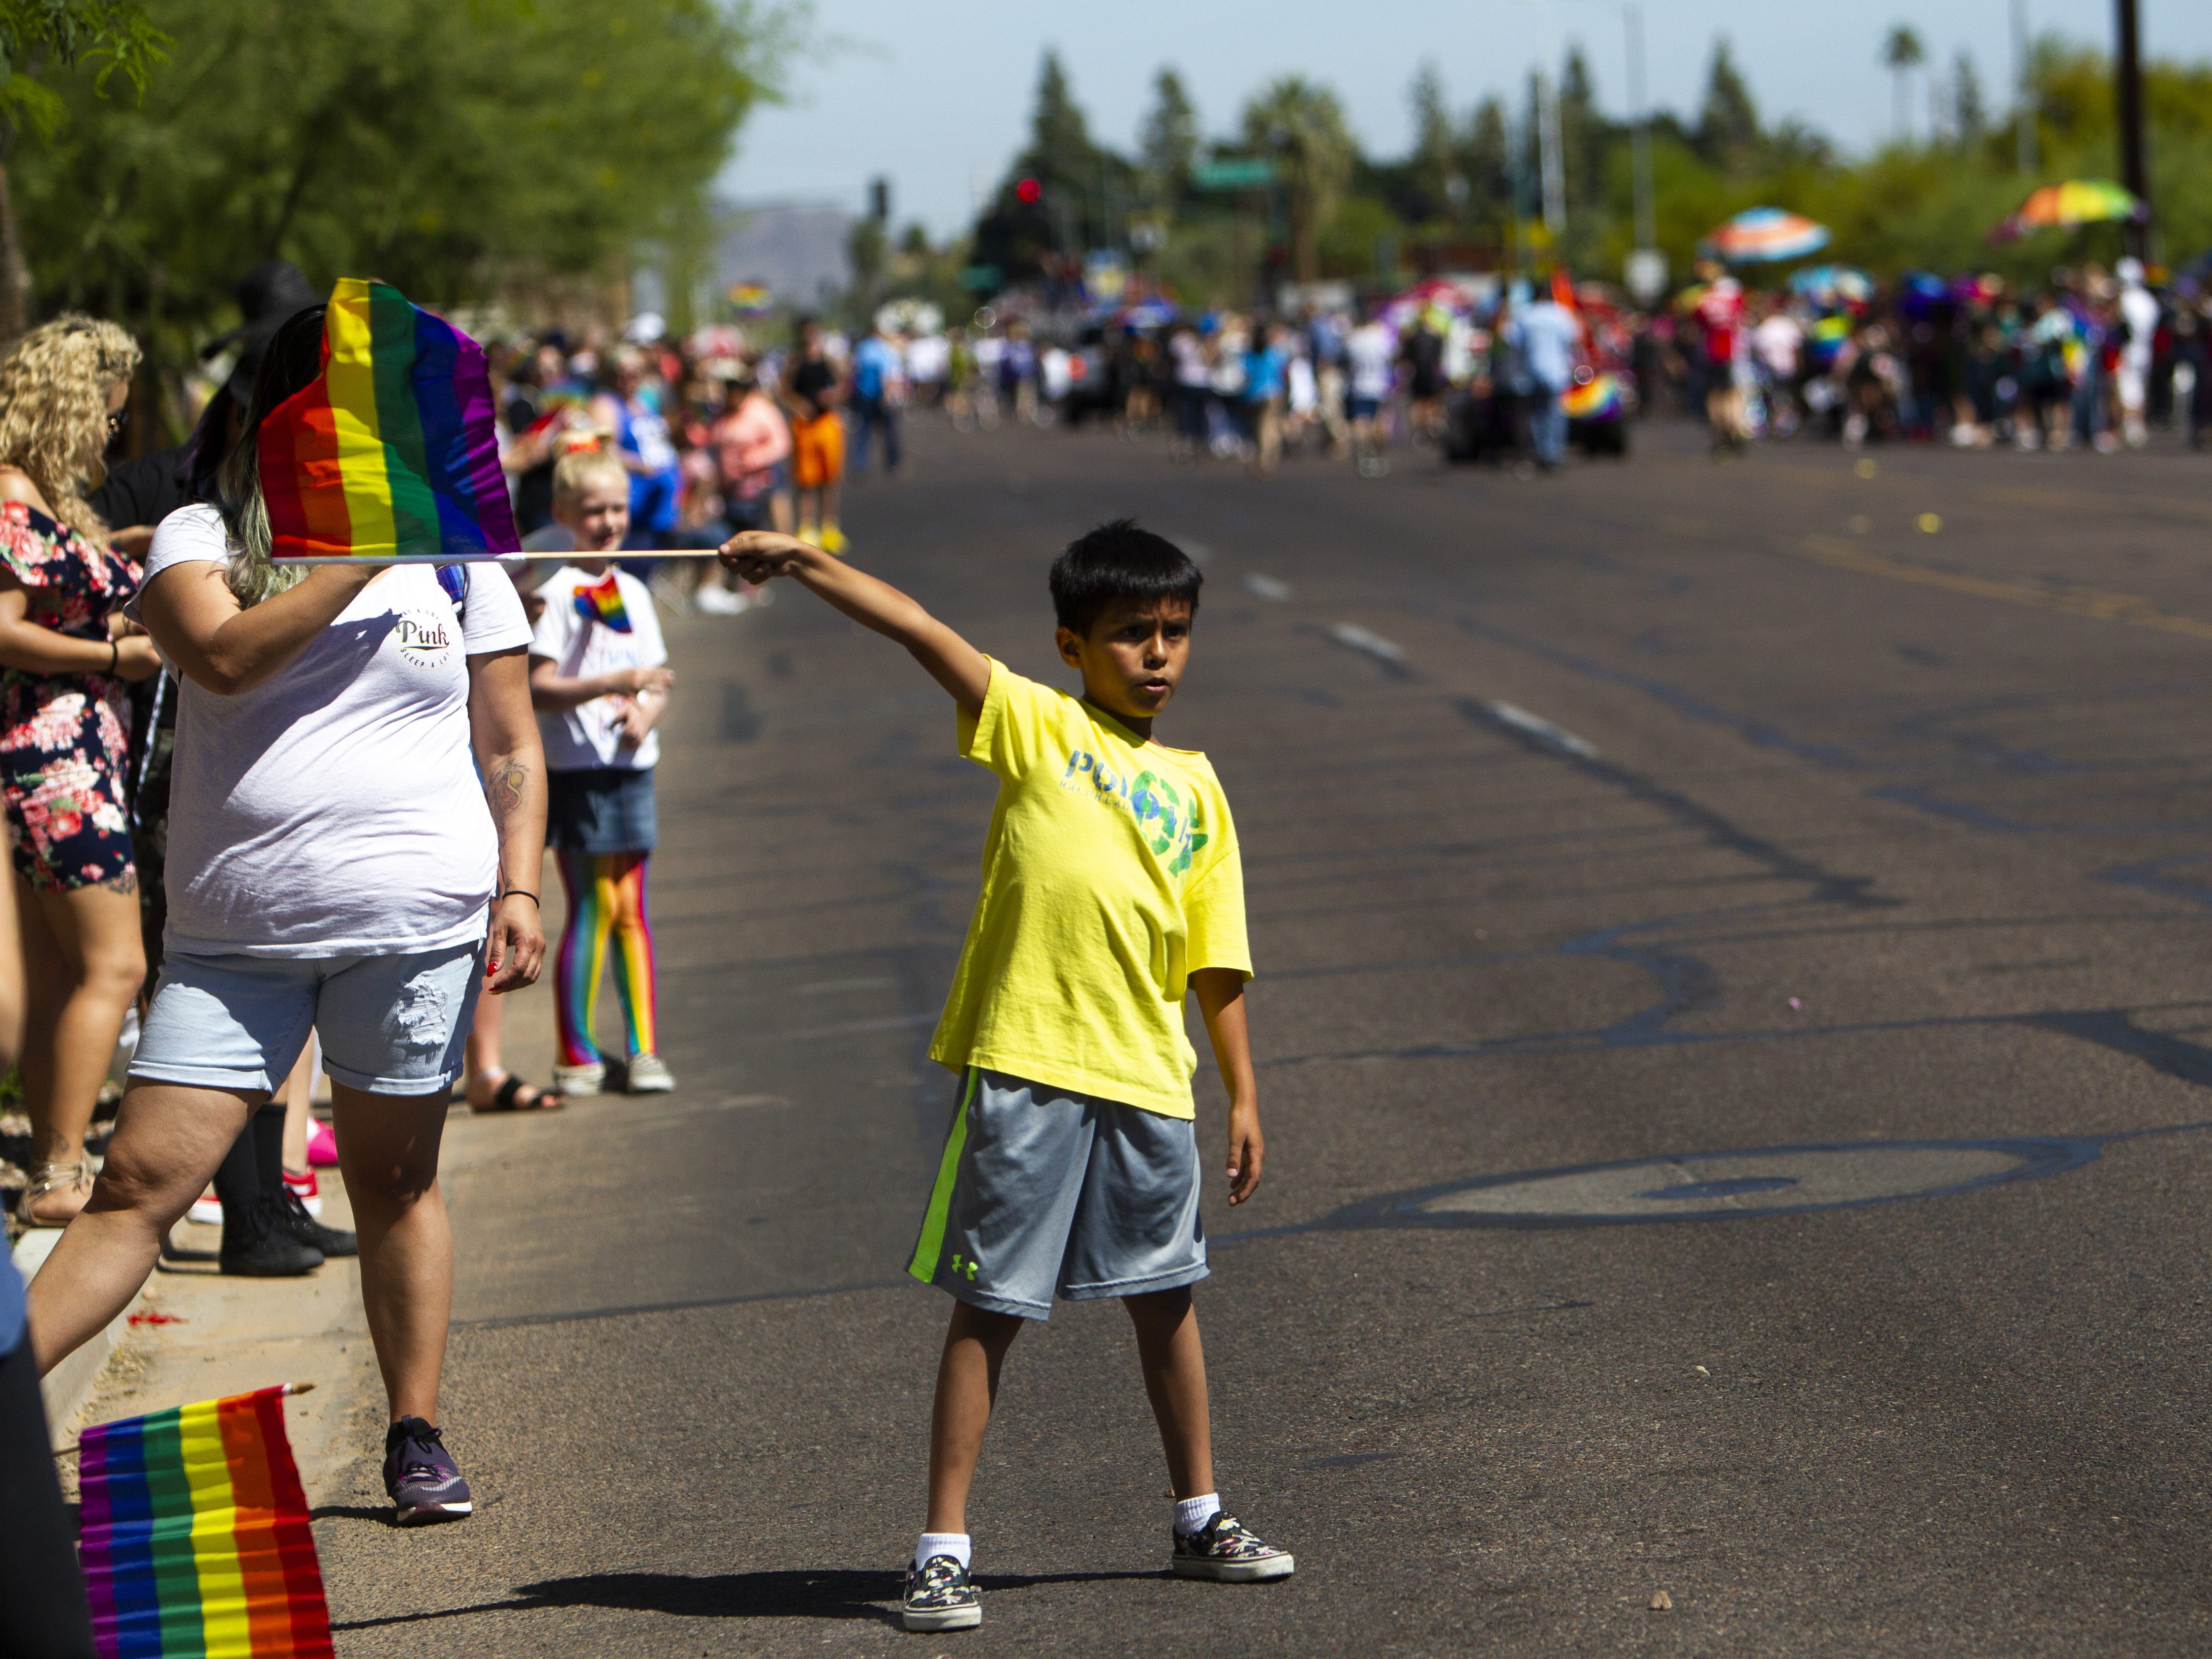 A boy waves a rainbow flag during the Phoenix Pride Parade on April 7, 2019.